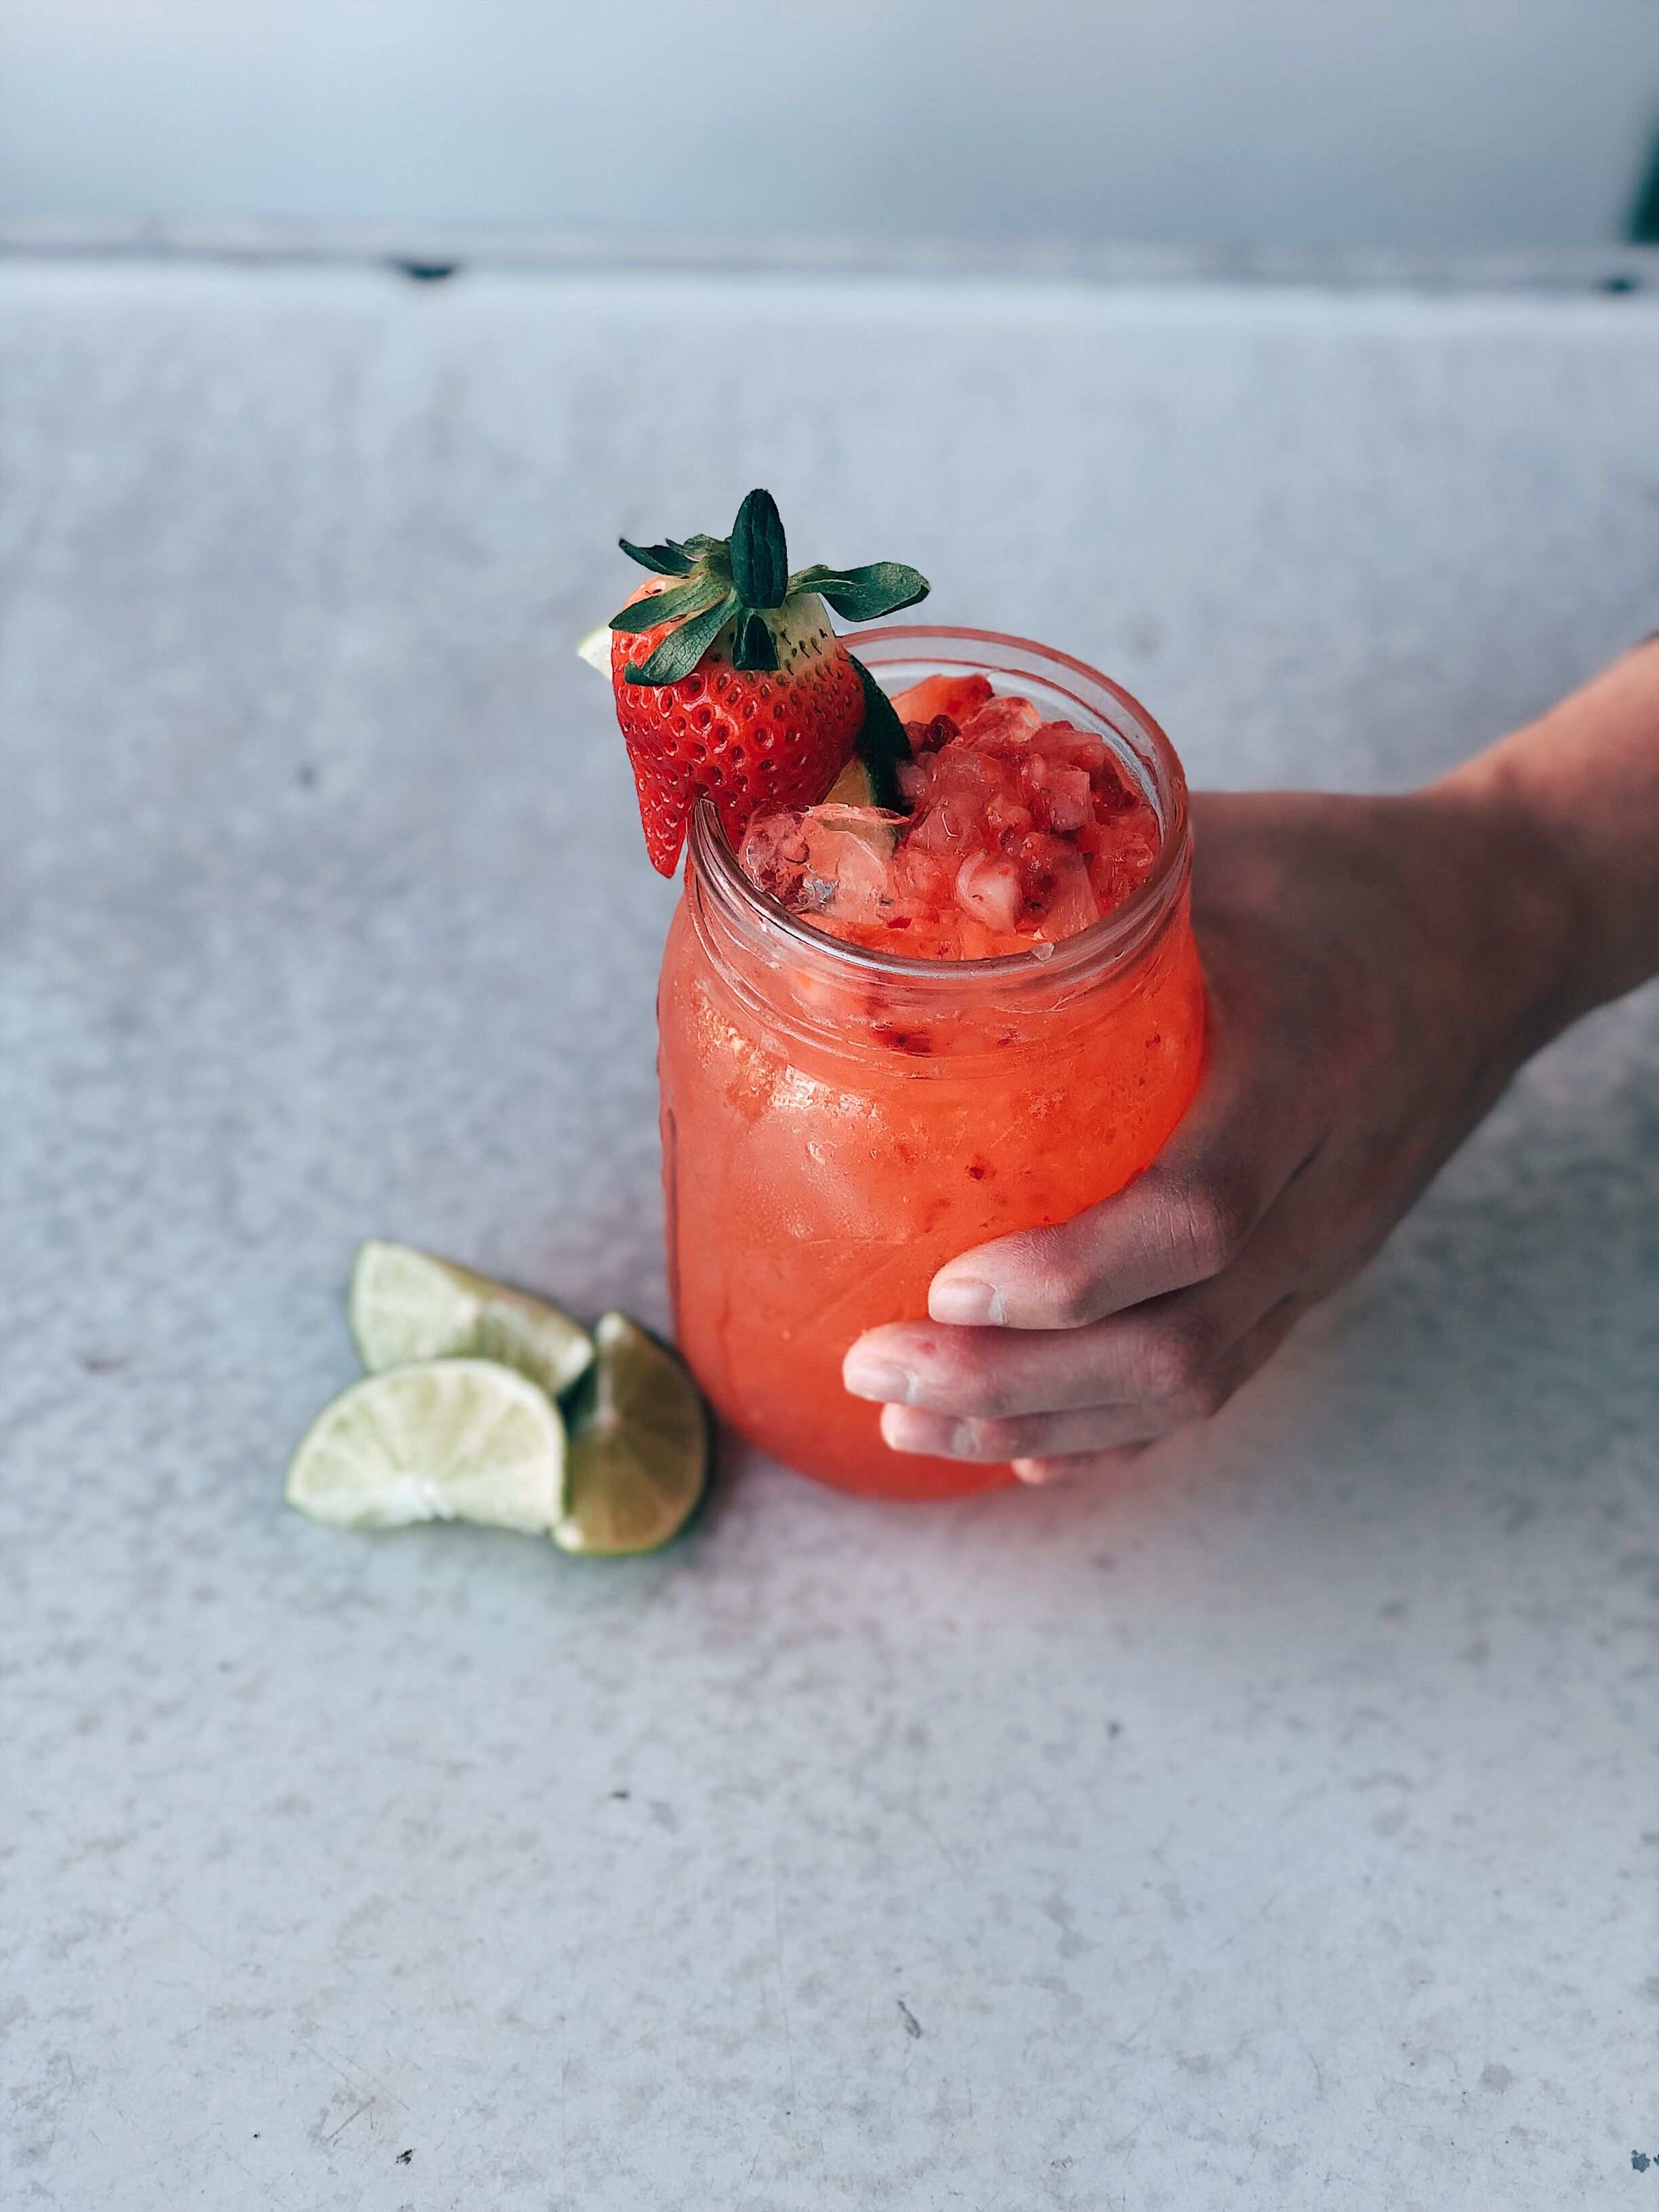 Strawberry Jam Daiquiri - Makes 1 drinkIngredients•1.5oz Santa Teresa rum•1oz Strawberry purée•1/2oz rich simple syrup•1/2 tsp of Strawberry Bourbon jam•Two lime wedges squeezed and more for garnish1. Shake all ingredients with ice until frothy.2. Strain into chilled glass with ice, and garnish with lime wedge!